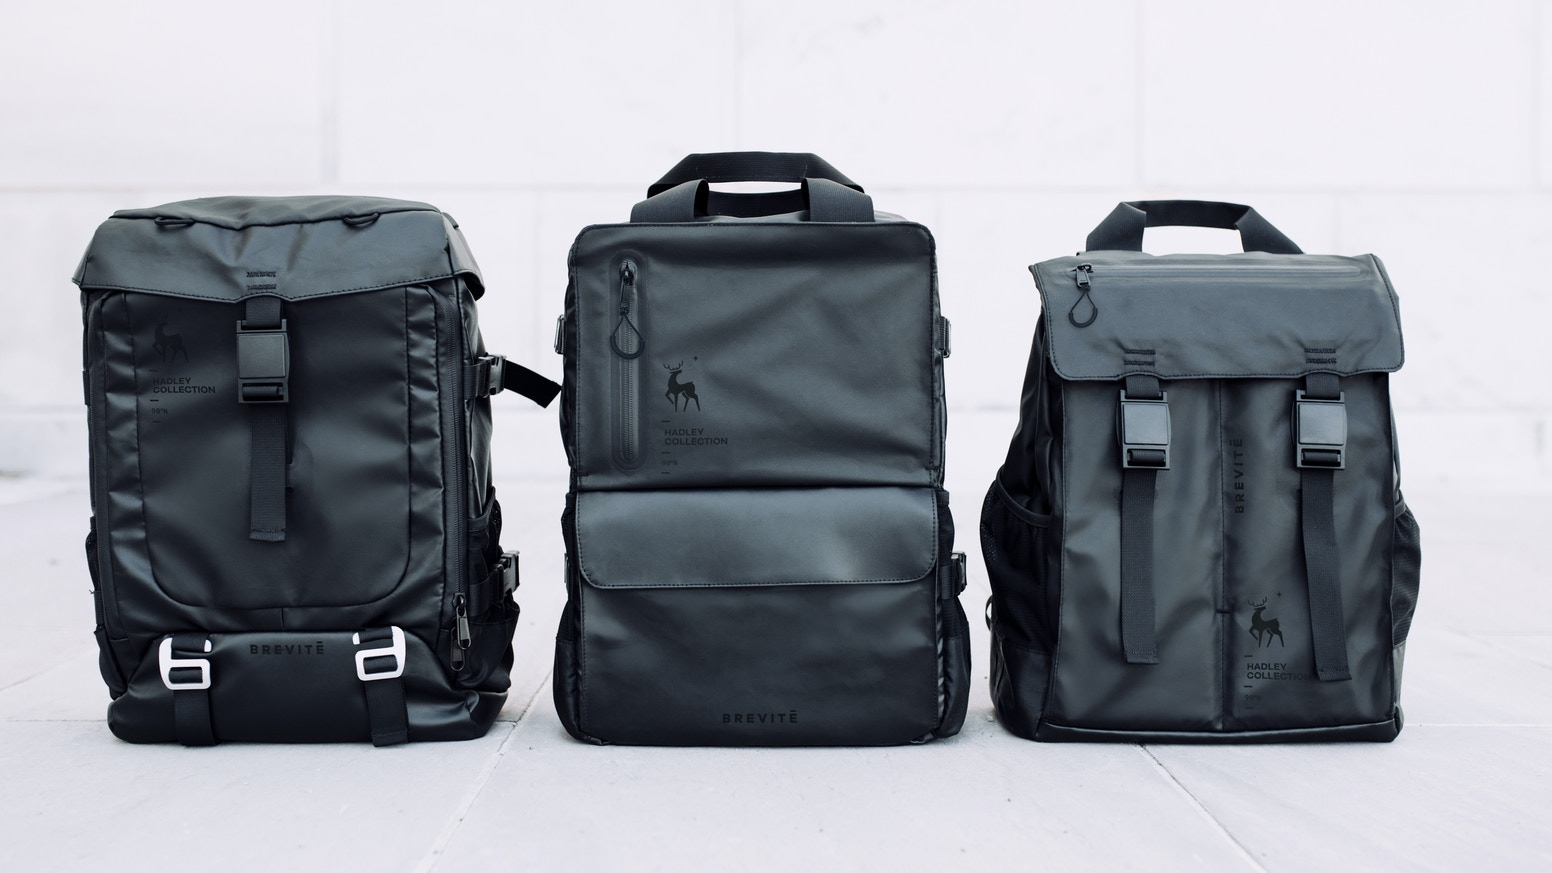 bf07235f07d0 Brevitē  The Ultimate Travel and Commuter Backpack by Brandon Kim ...